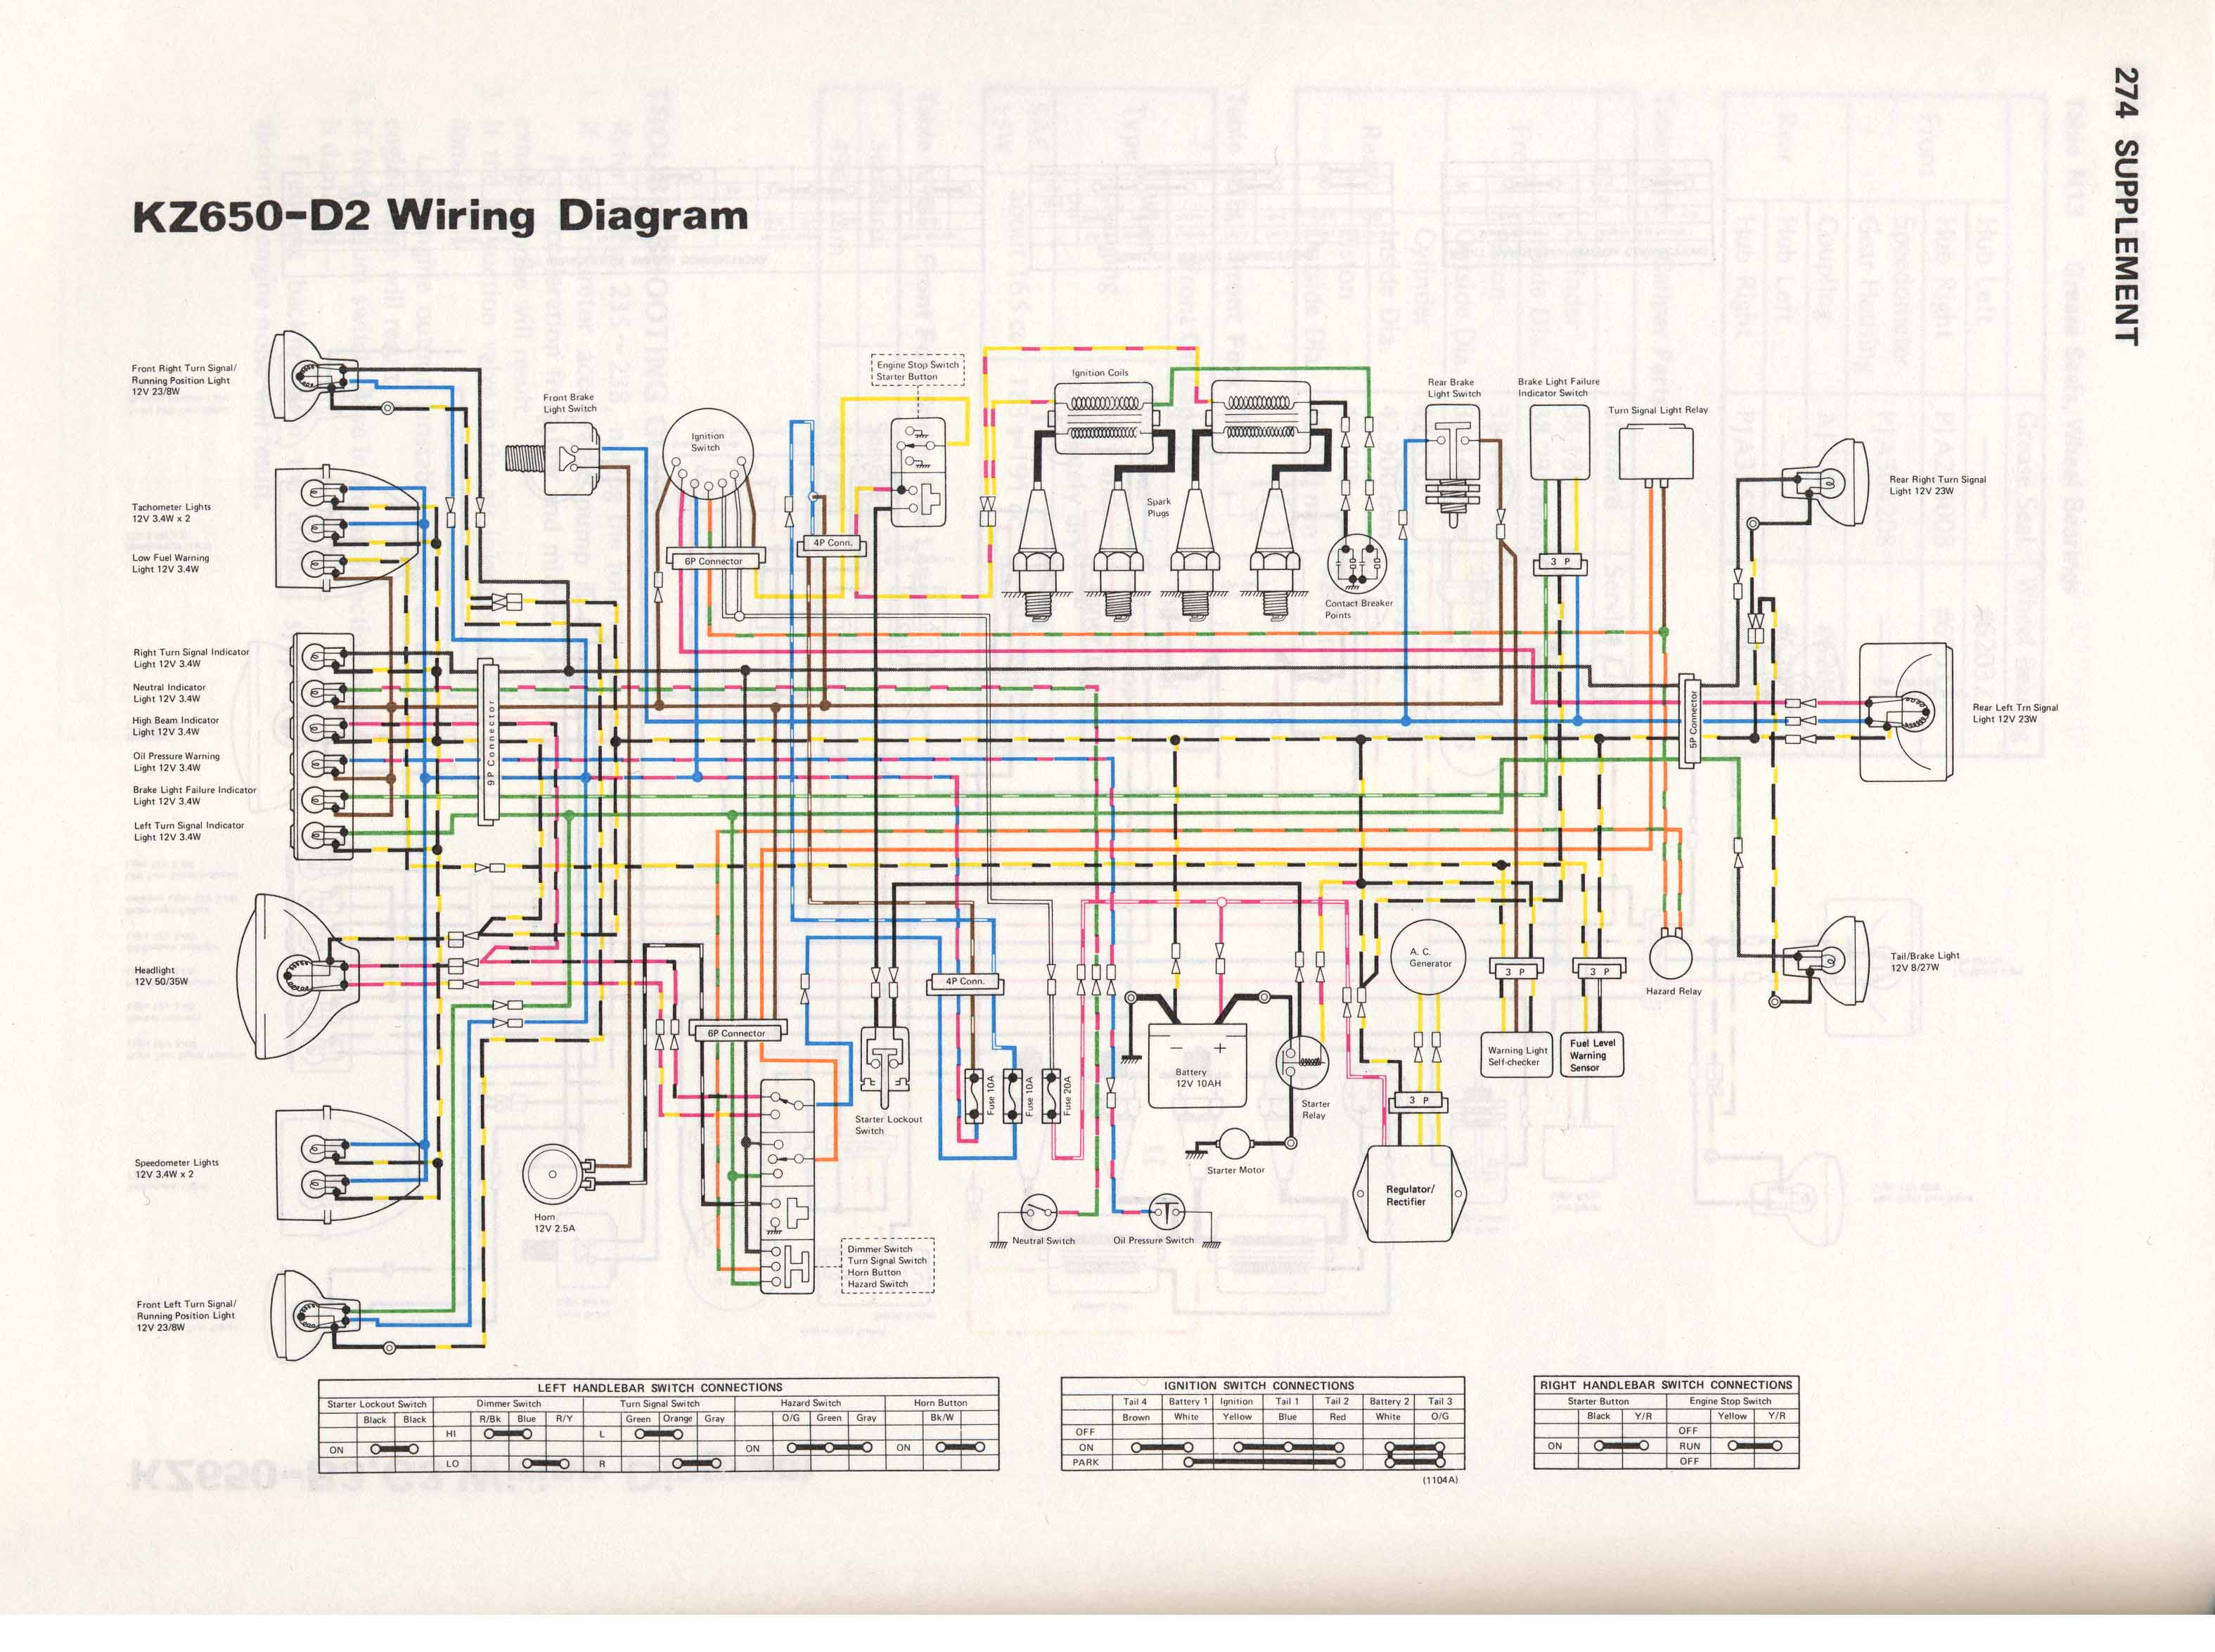 362 Kawasaki Key Switch Wiring Diagram | Wiring ResourcesWiring Resources